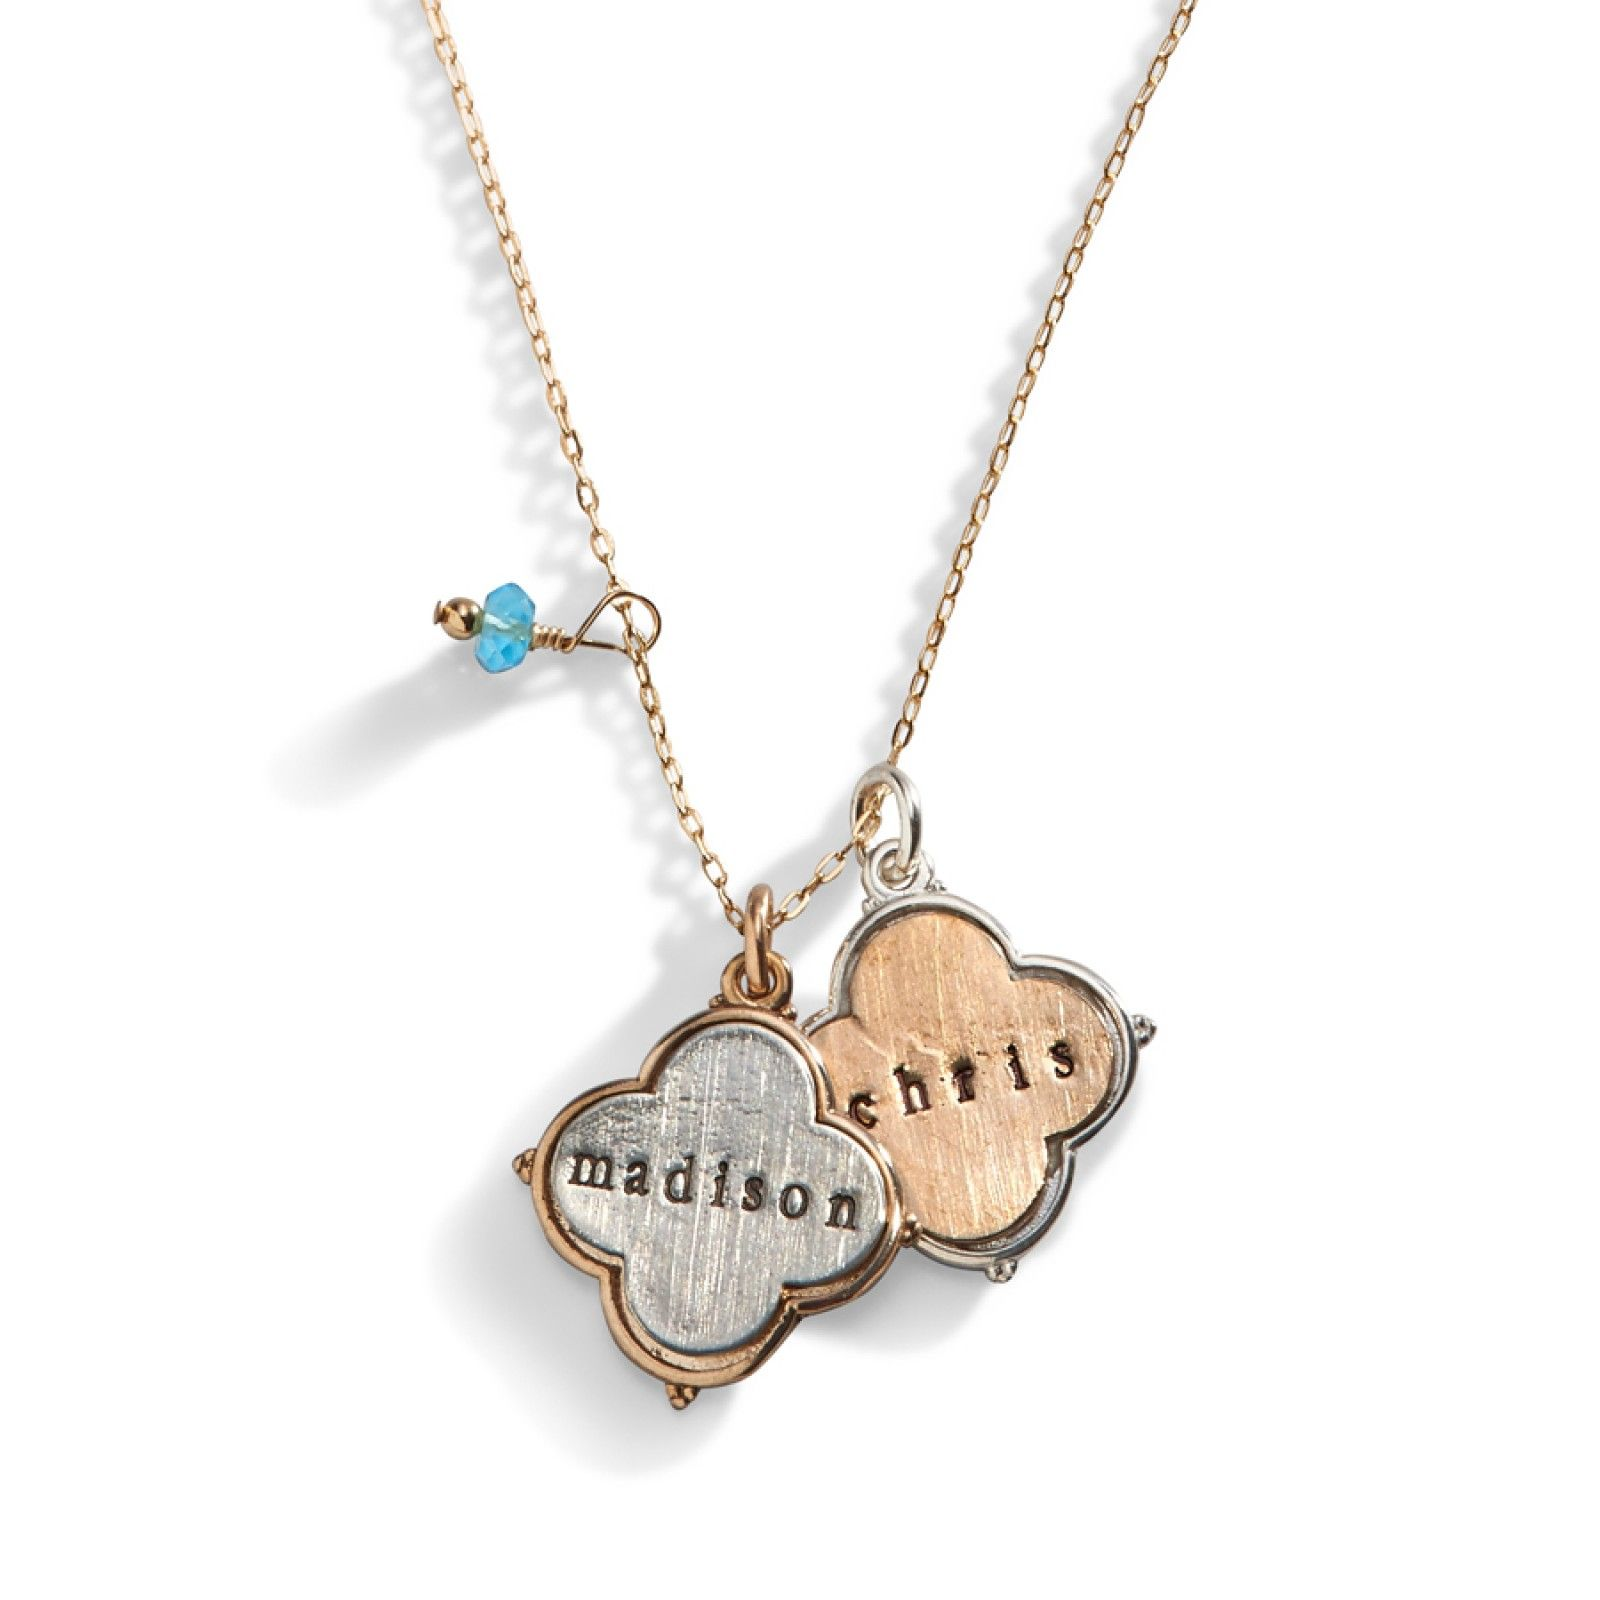 b0f53095113c9 Veronica Luck and Love Necklace   Personalized Jewelry   Love ...